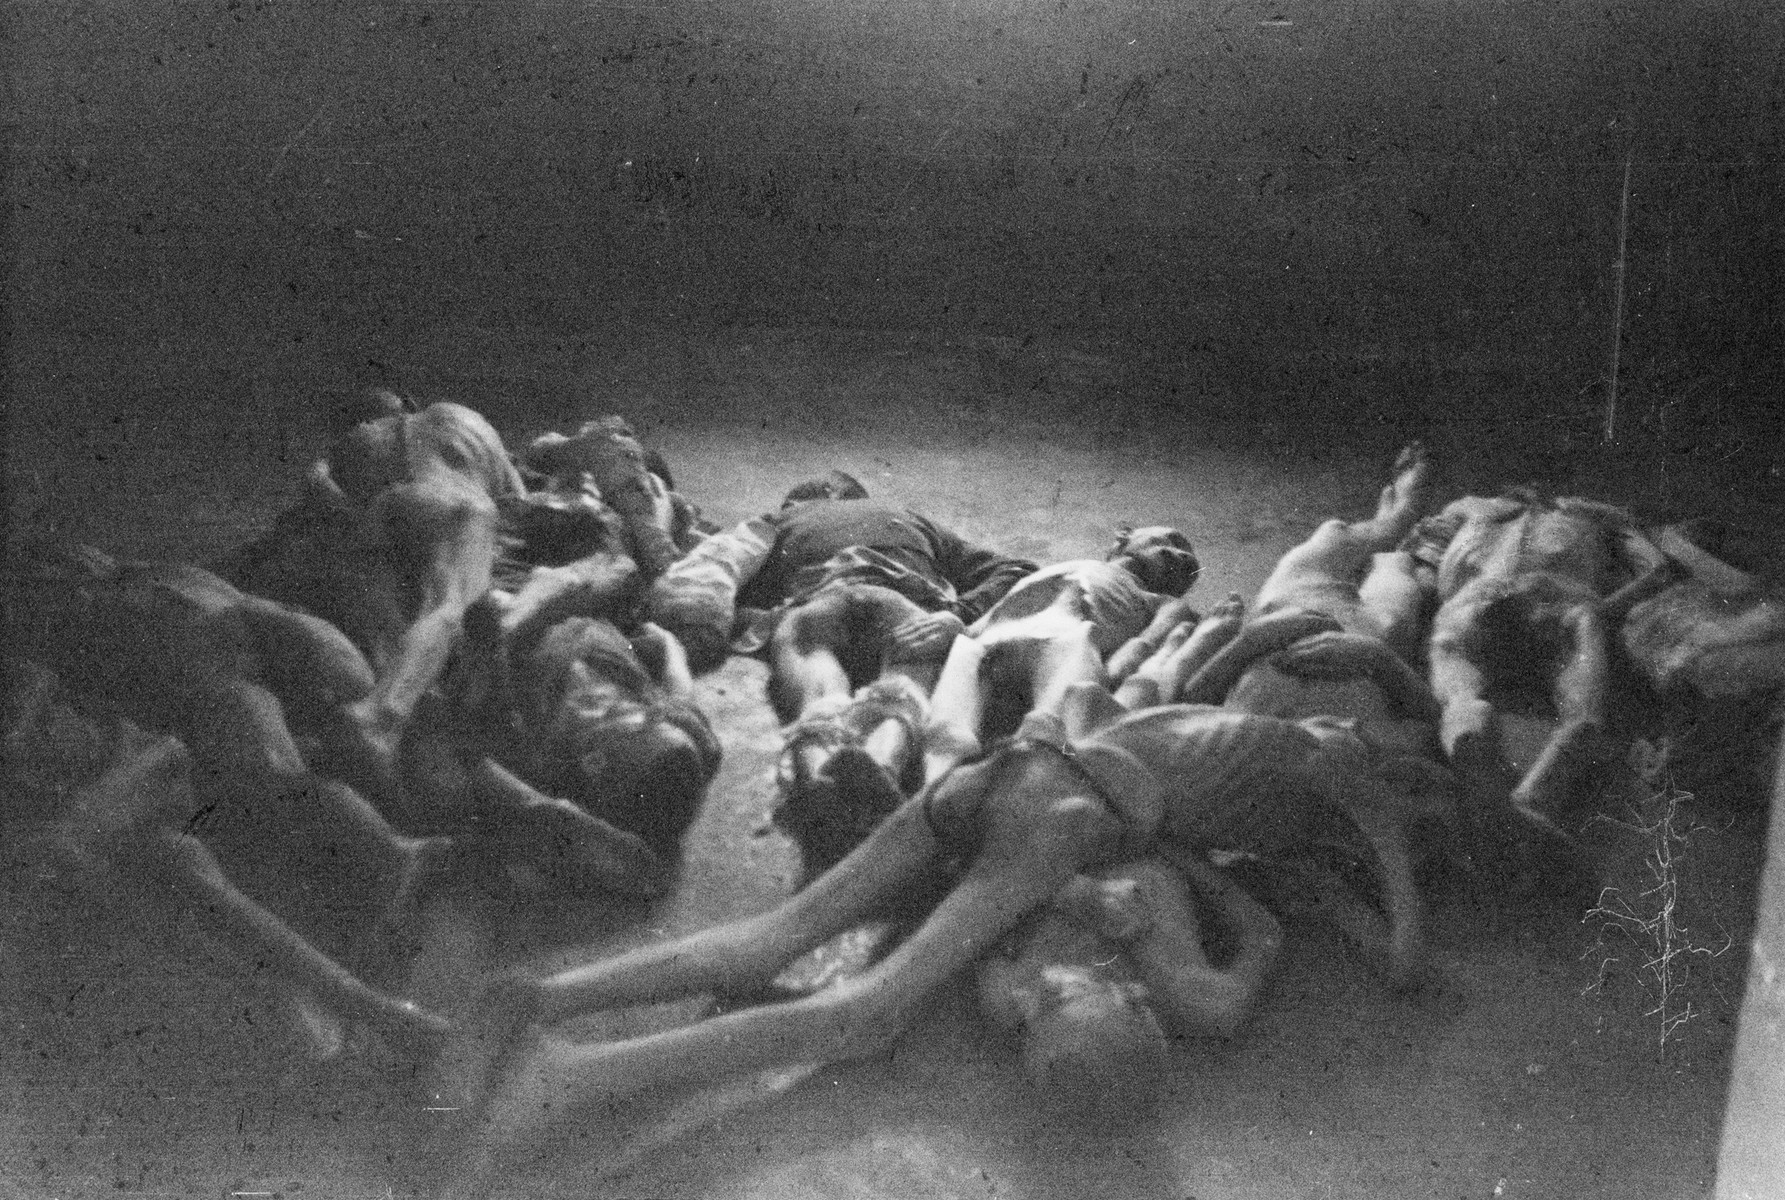 The emaciated bodies of concentration camp prisoners lie on the floor of a building in the newly liberated Nordhausen camp.